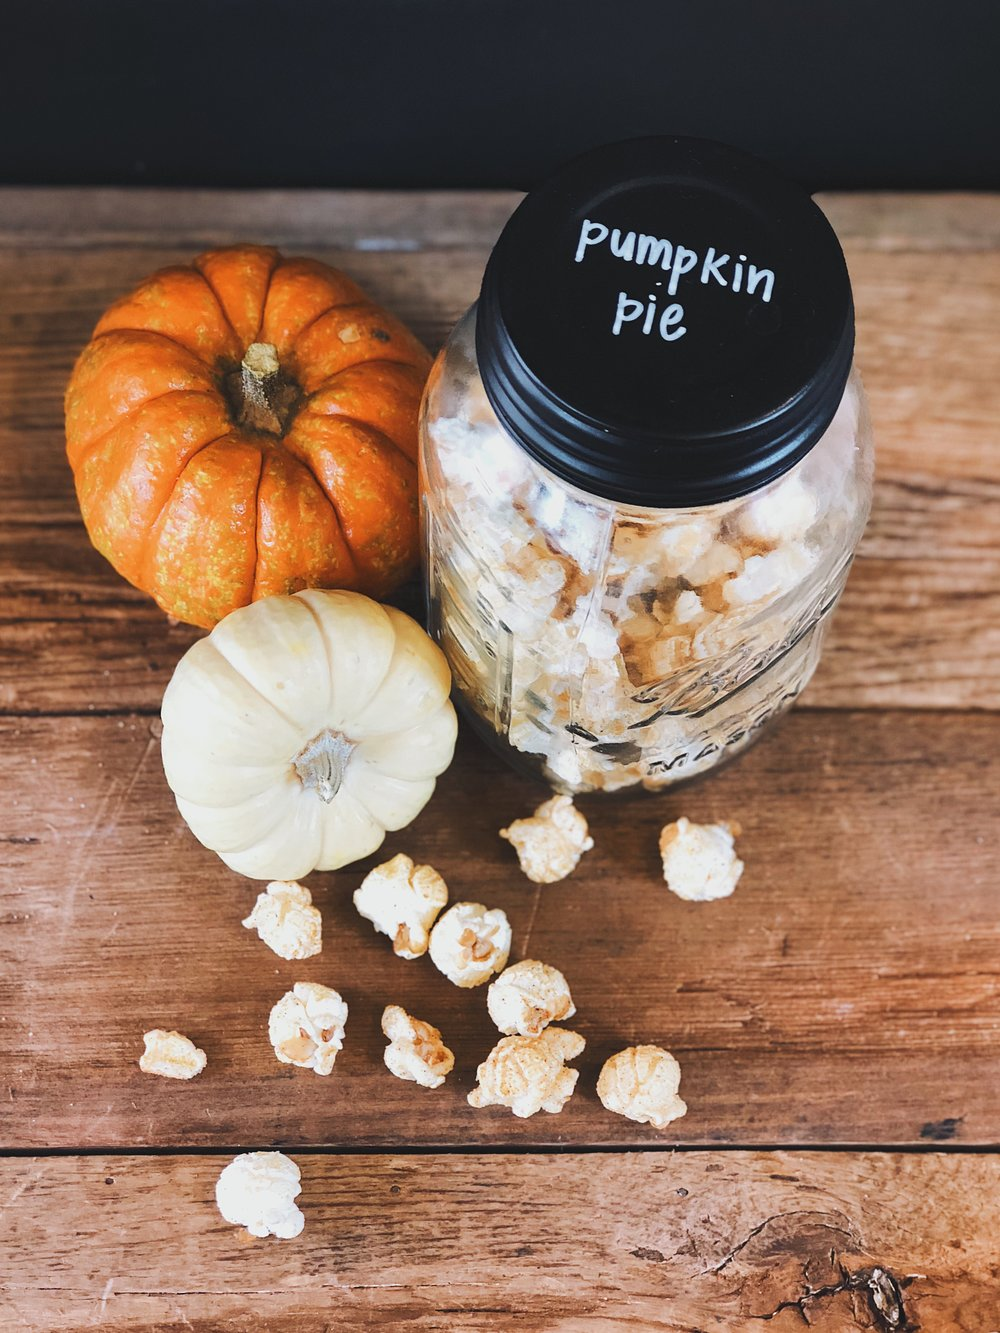 Pumpkin Pie - A blend of spices, just like grandma makes!Available October - NovemberDairy & Gluten FreeVegan